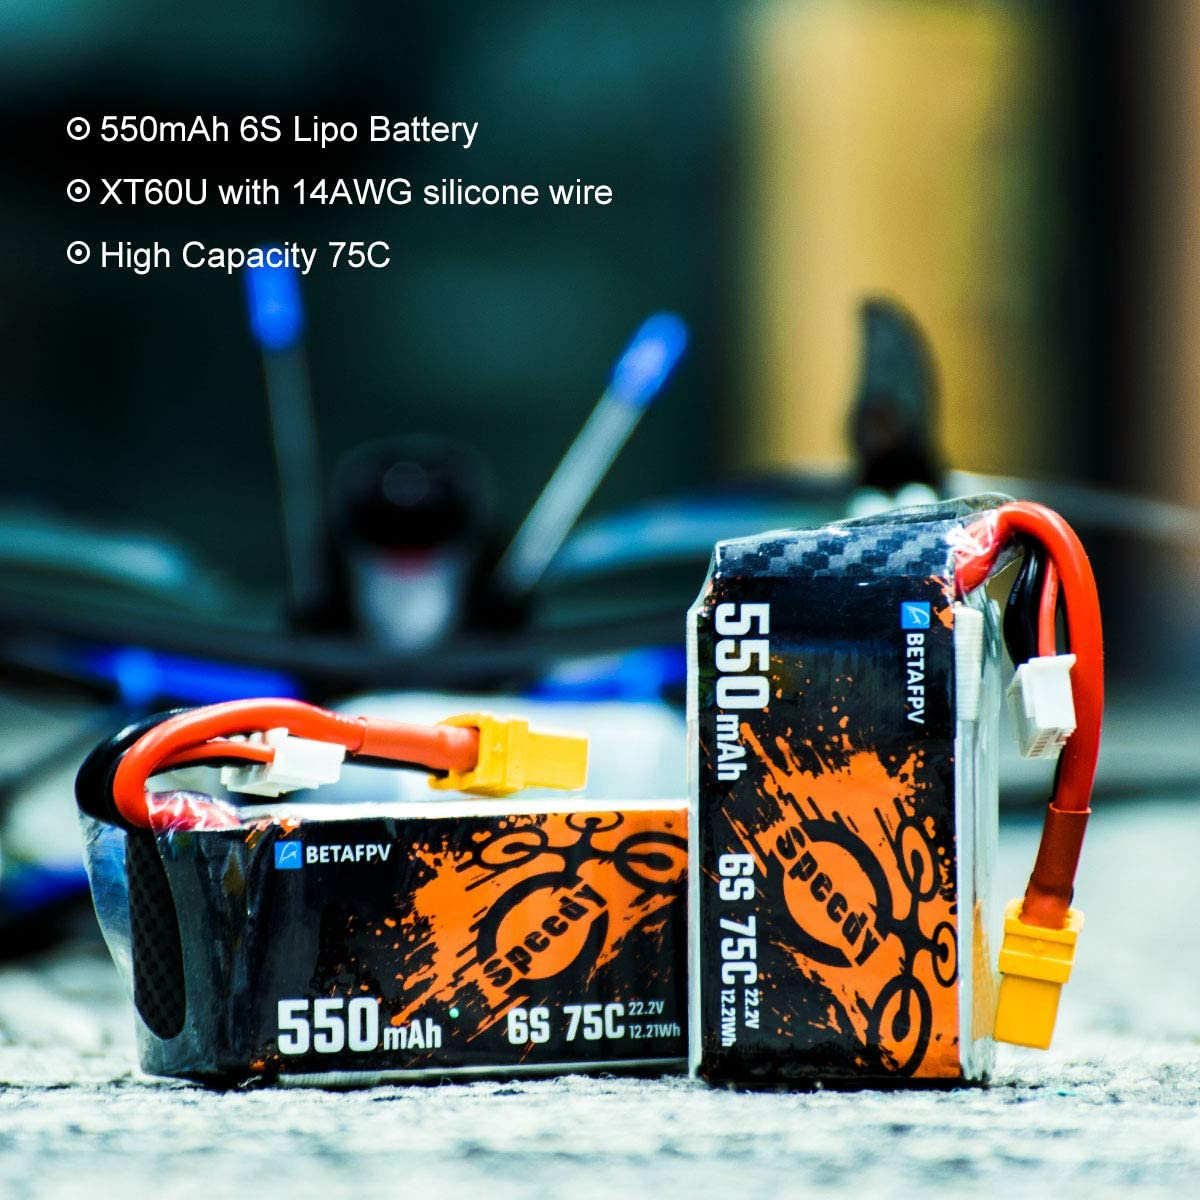 BETAFPV 2pcs 550mAh 6S Lipo Battery 75C 22.2V with XT60U Plug 14AWG Silicone Wire for FPV Racing Quadcopter Toothpick Drone